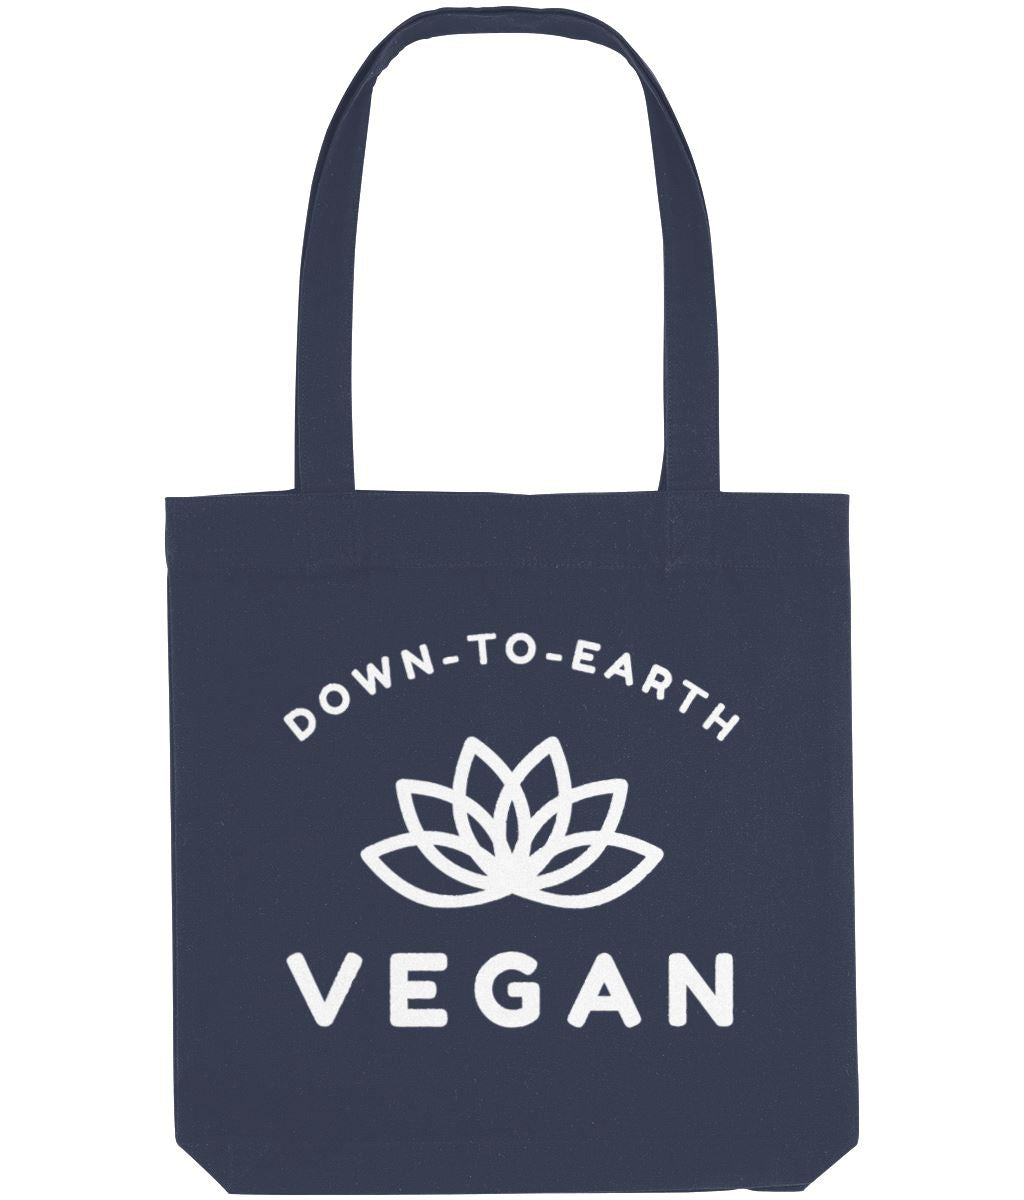 """Down-To-Earth Vegan"" - Those Vegan Guys Tote Bag - Dark Colours Clothing Vegan Original Midnight Blue"